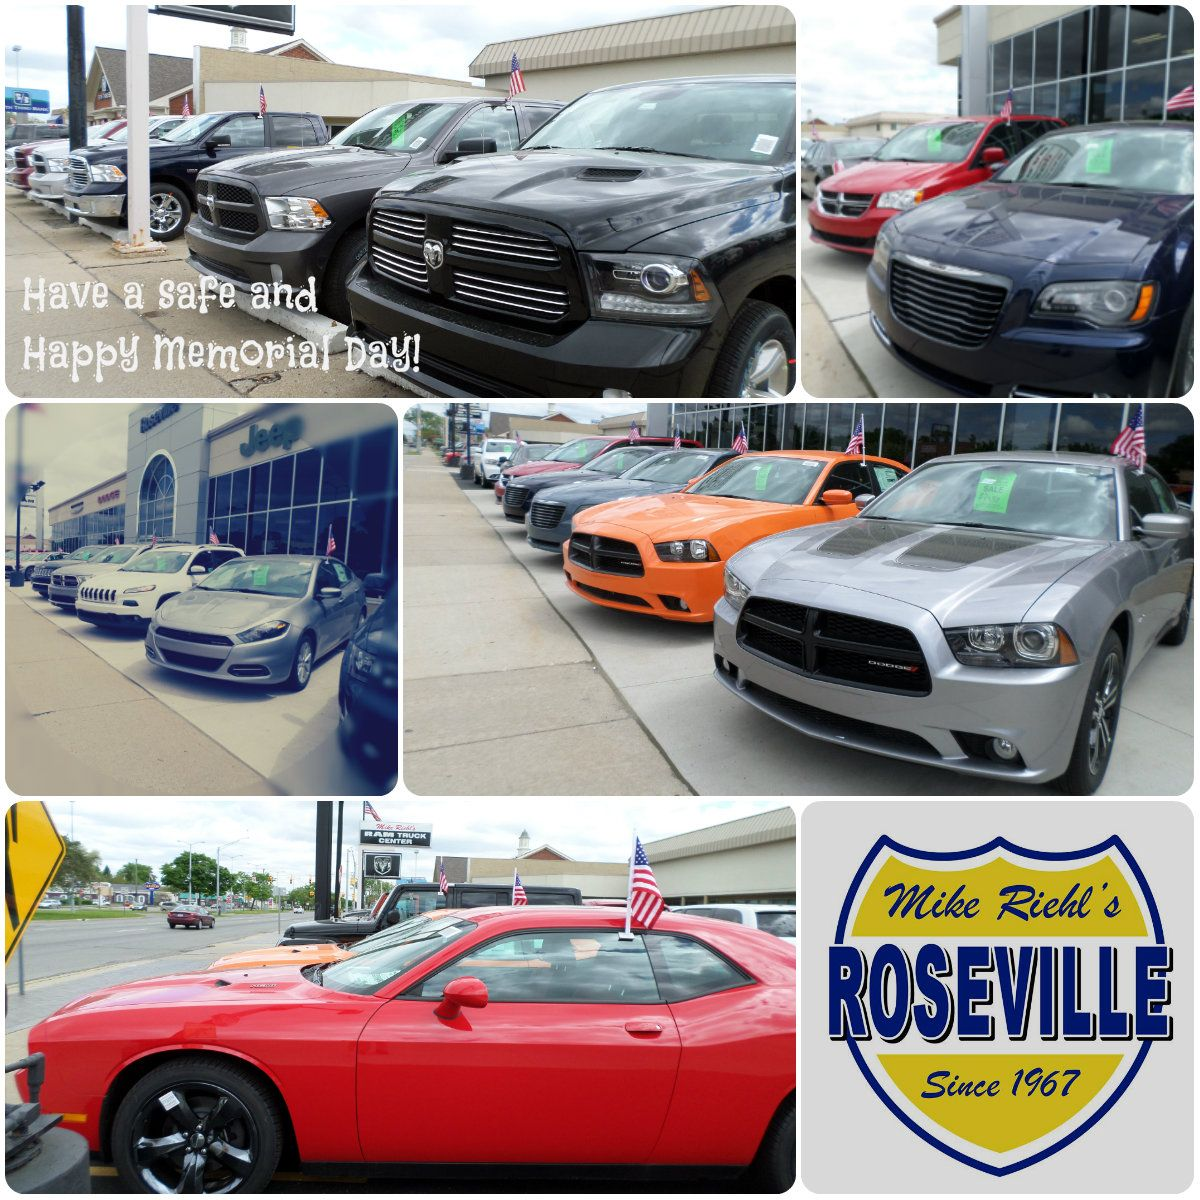 Find This Pin And More On Mike Riehlu0027s Roseville Chrysler Dodge Jeep Ram By  Mikeriehls.